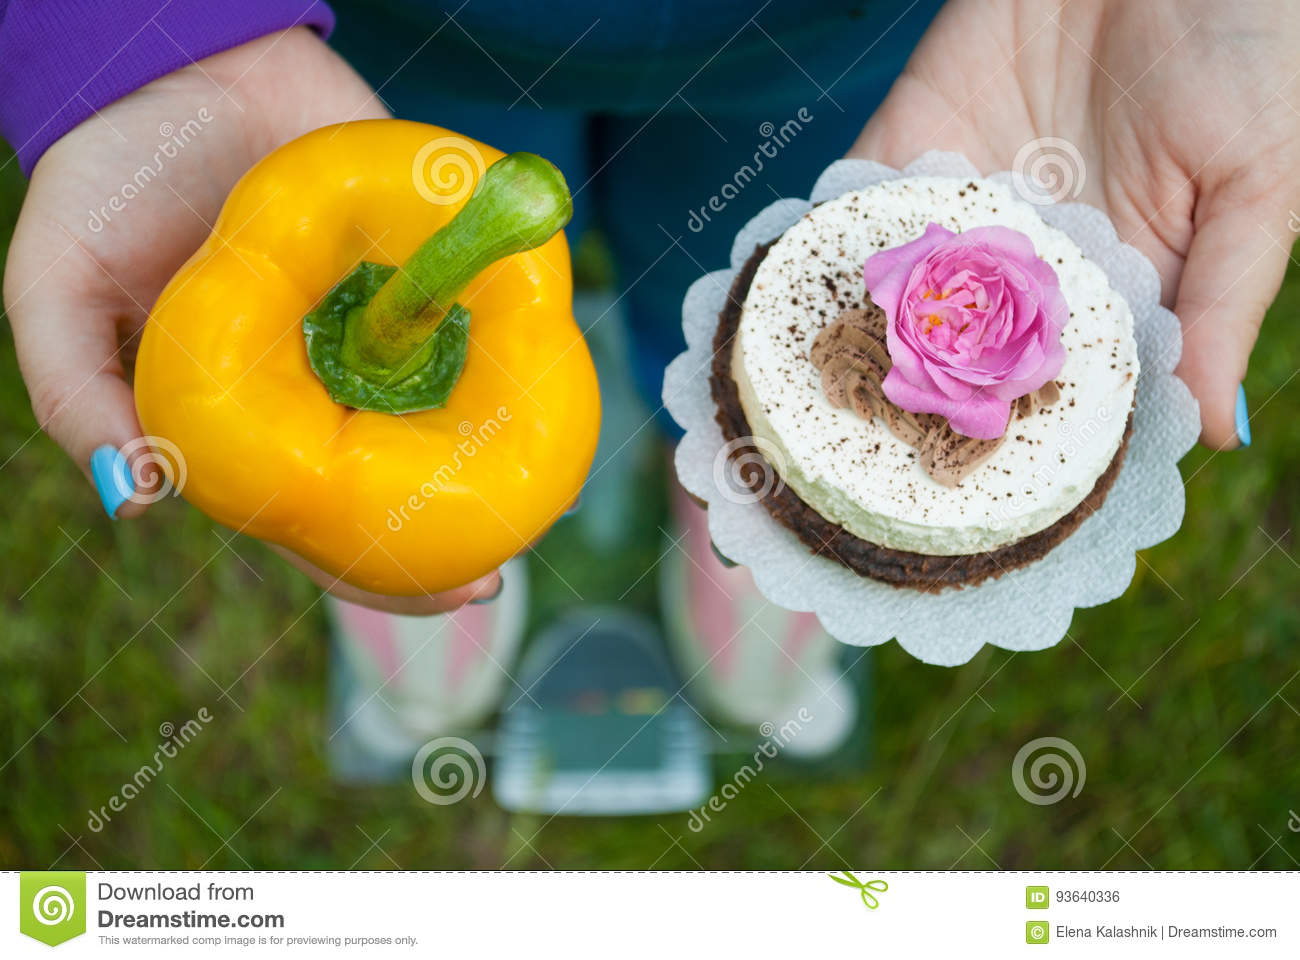 The fat woman is standing on the scales selects a yellow big sweet bell pepper